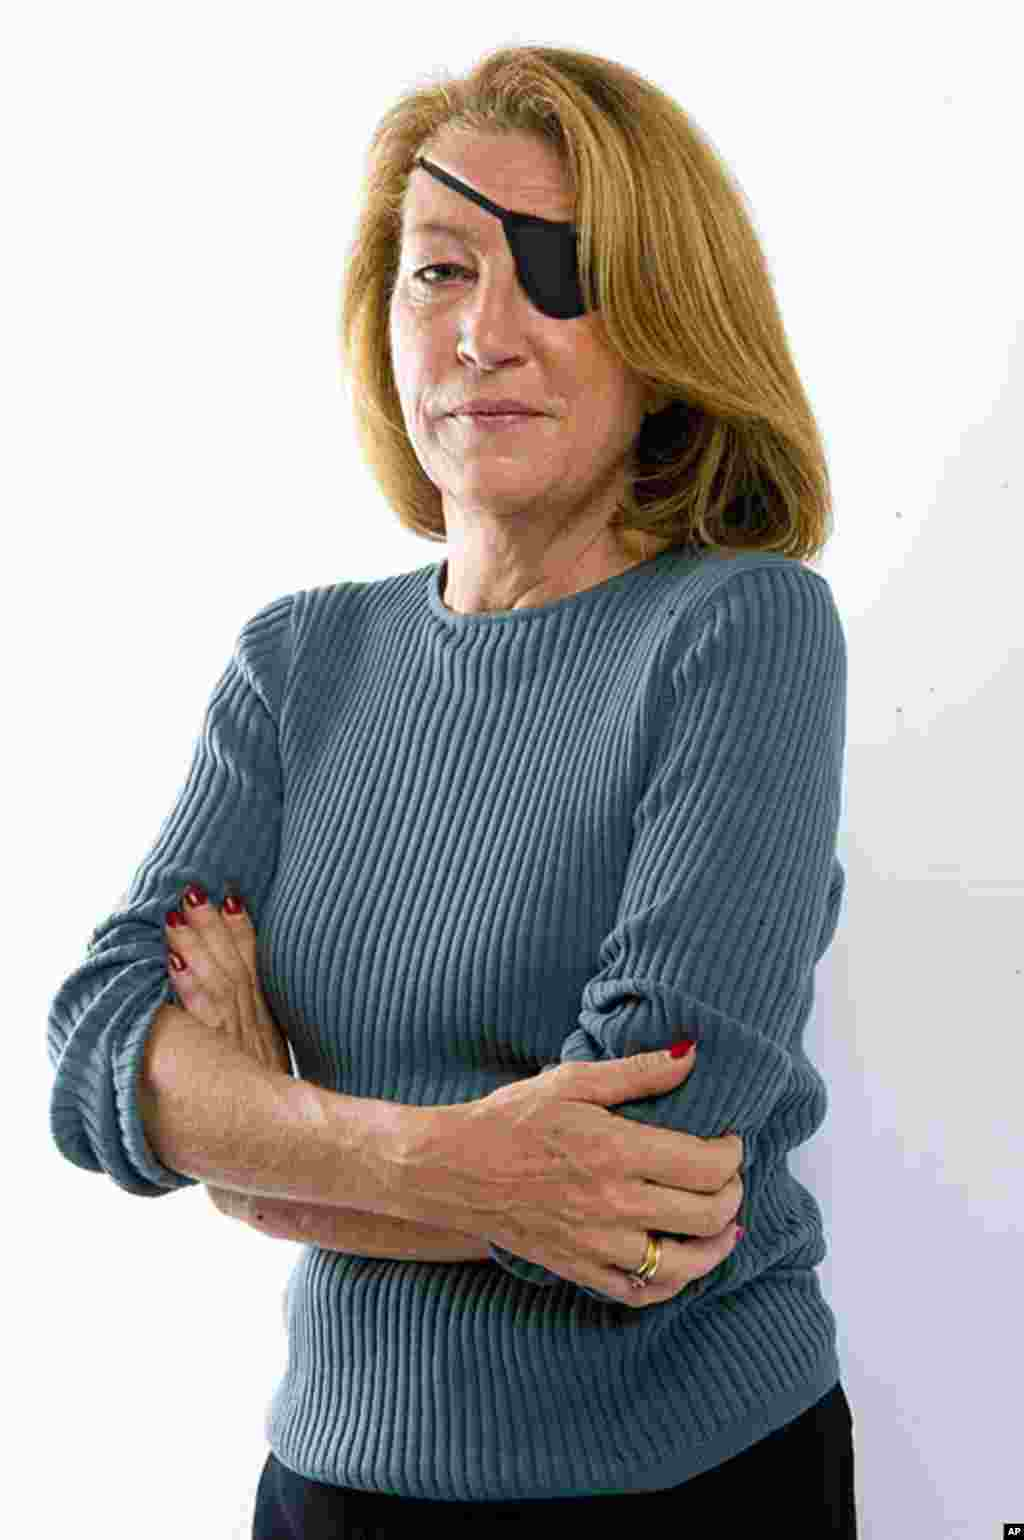 Award-winning American war reporter Marie Colvin was killed on February 22, 2012 by Syrian government shelling against the opposition stronghold of Homs, Syria. She was 57. (AP)